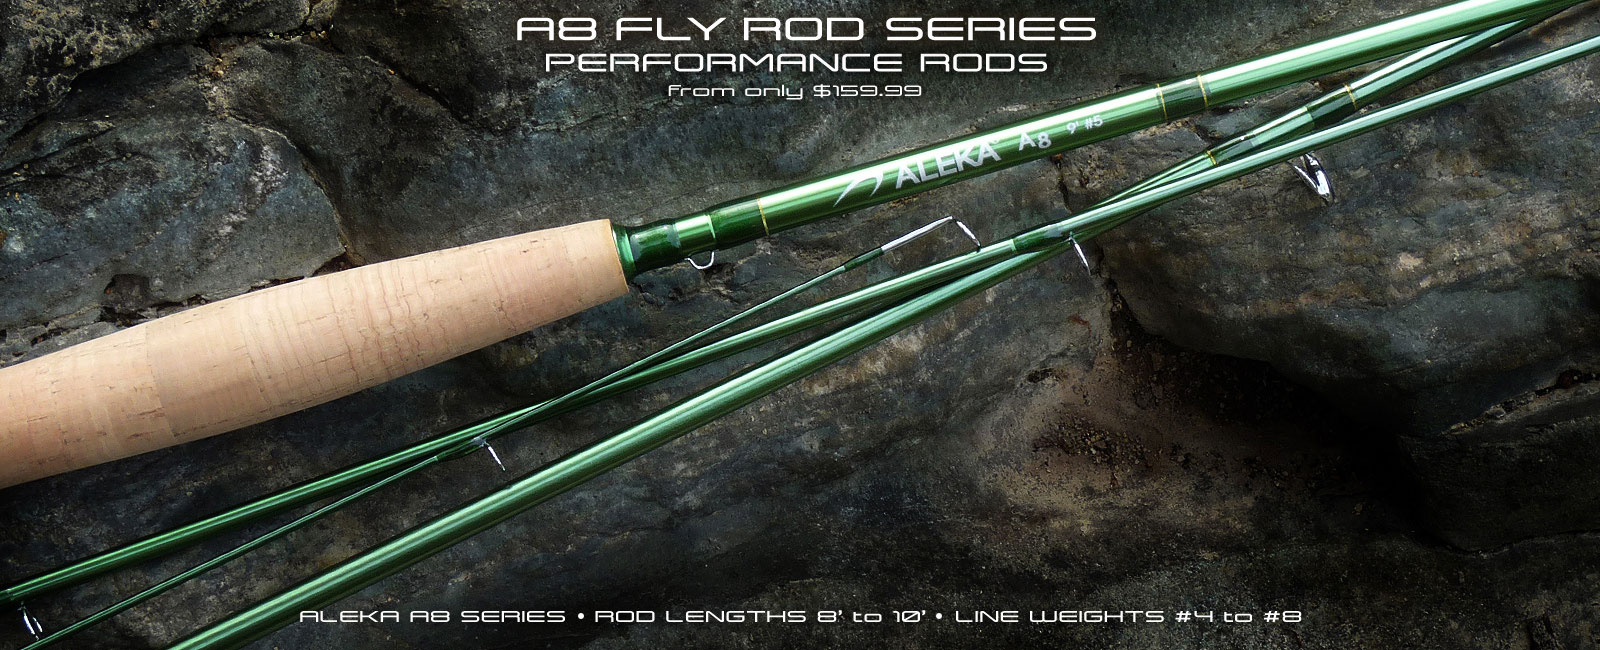 2017 ALEKA 3XT Fly Rod Series